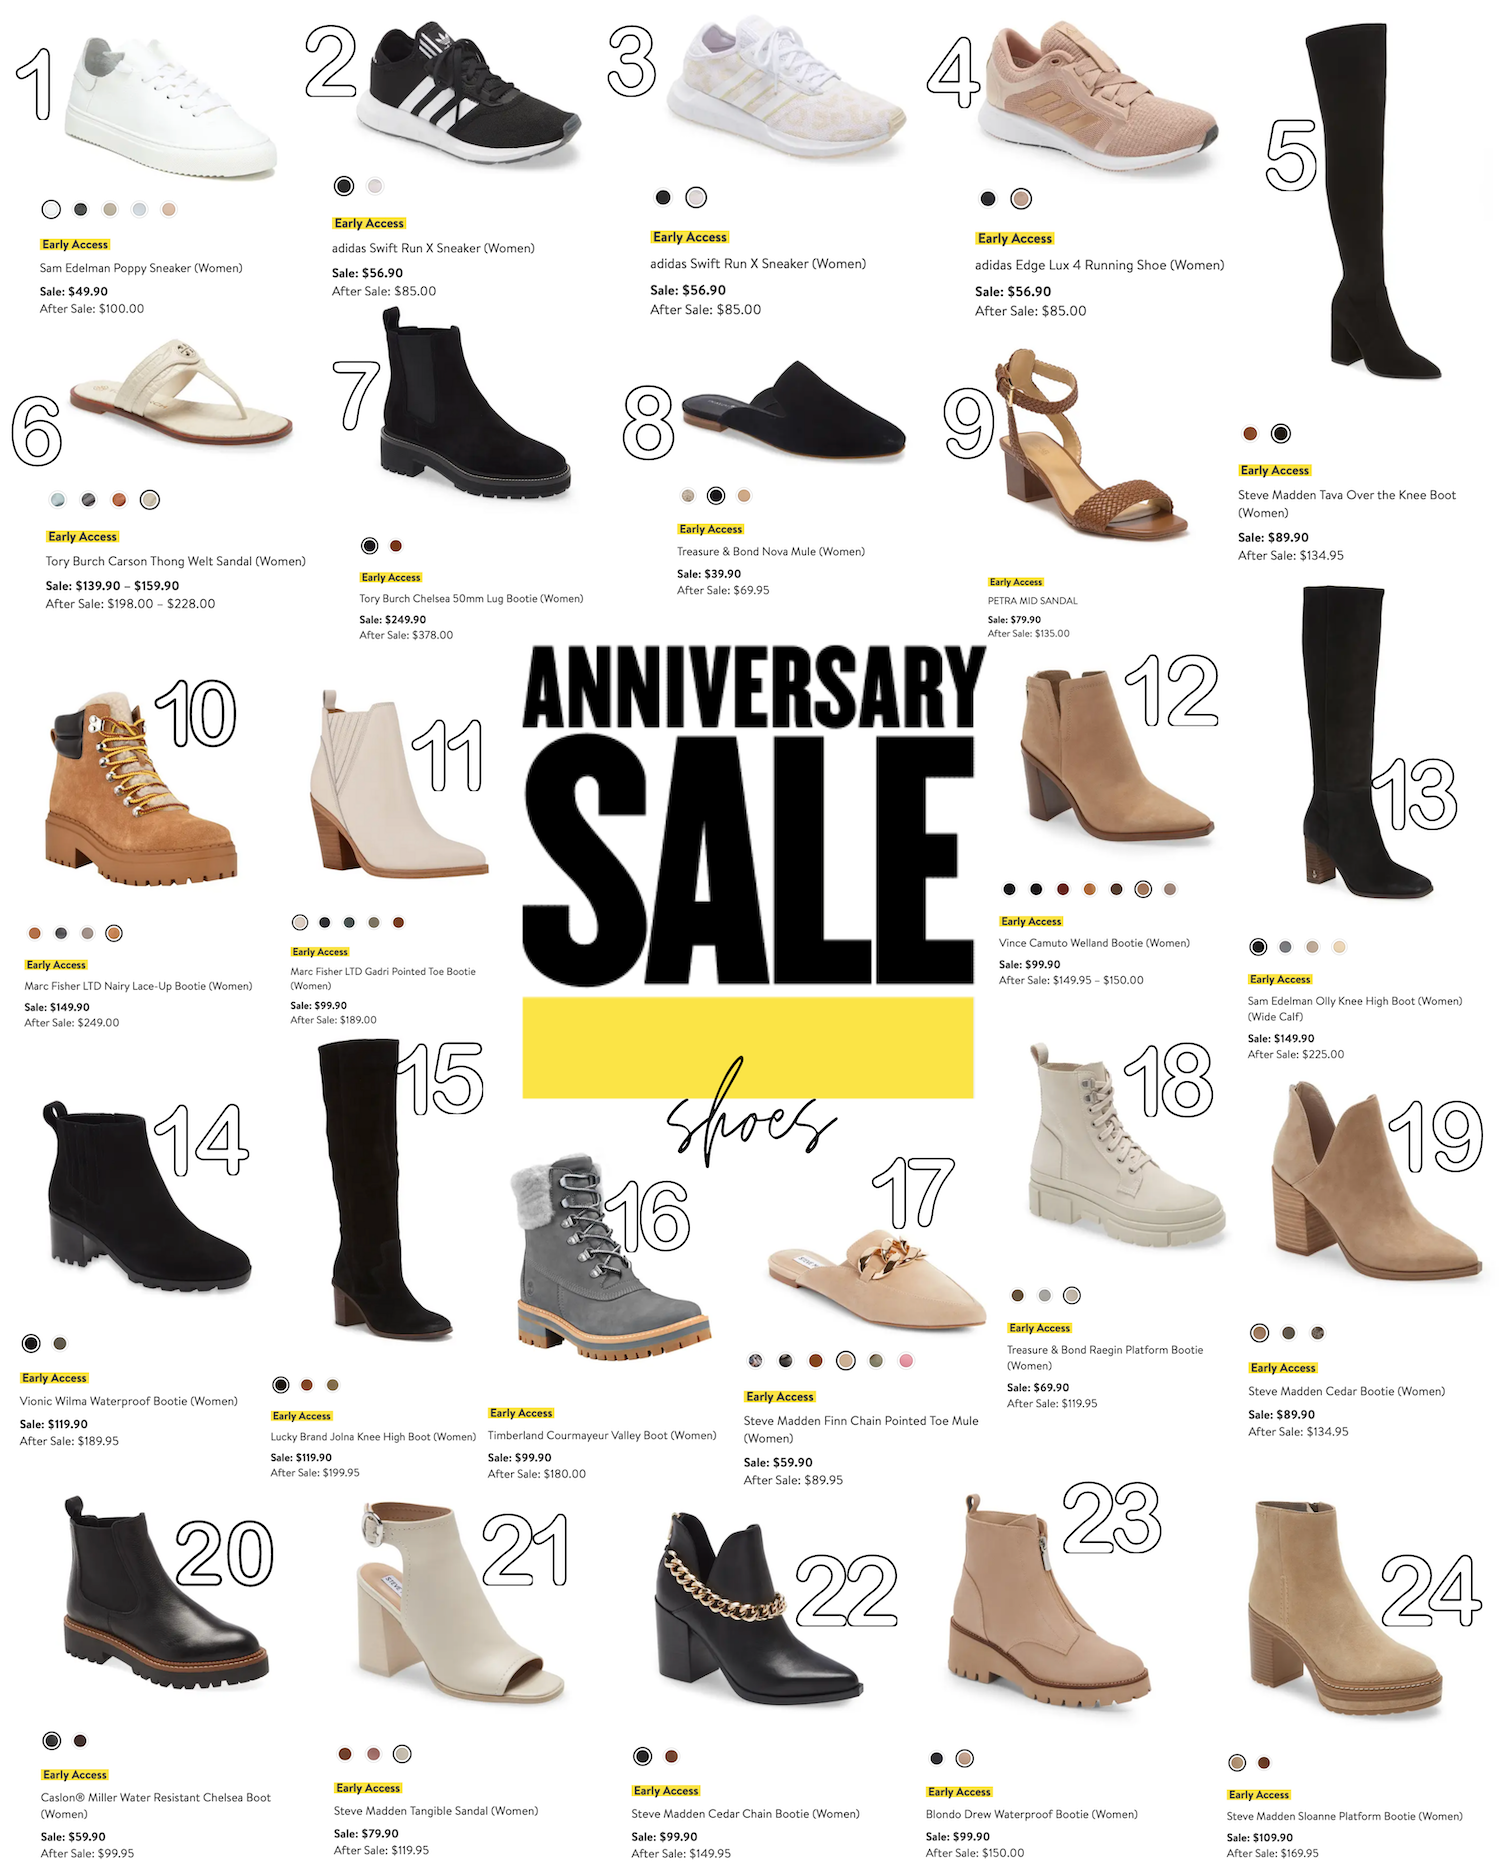 Nordstrom Sale 2021 Roundup The best Shoes daily dose of charm nsale Lauren Emily Lindmark